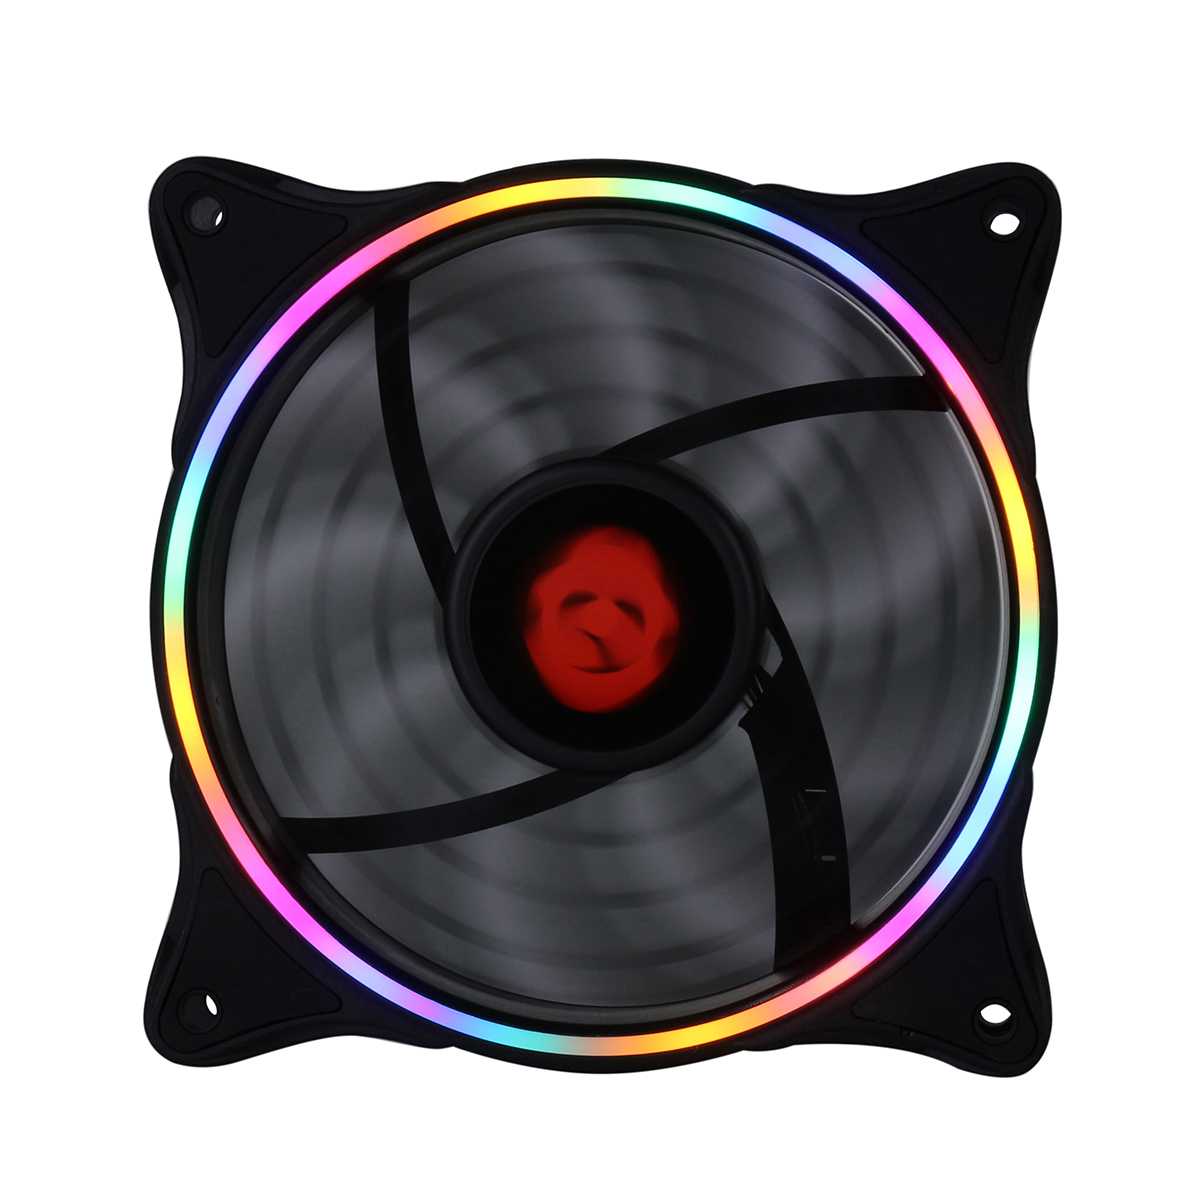 12V DC 3pin 4pin RGB LED Cooling Fan 120mm PC Cooling Fan Hydraulic Bearing 1300RPM Fan